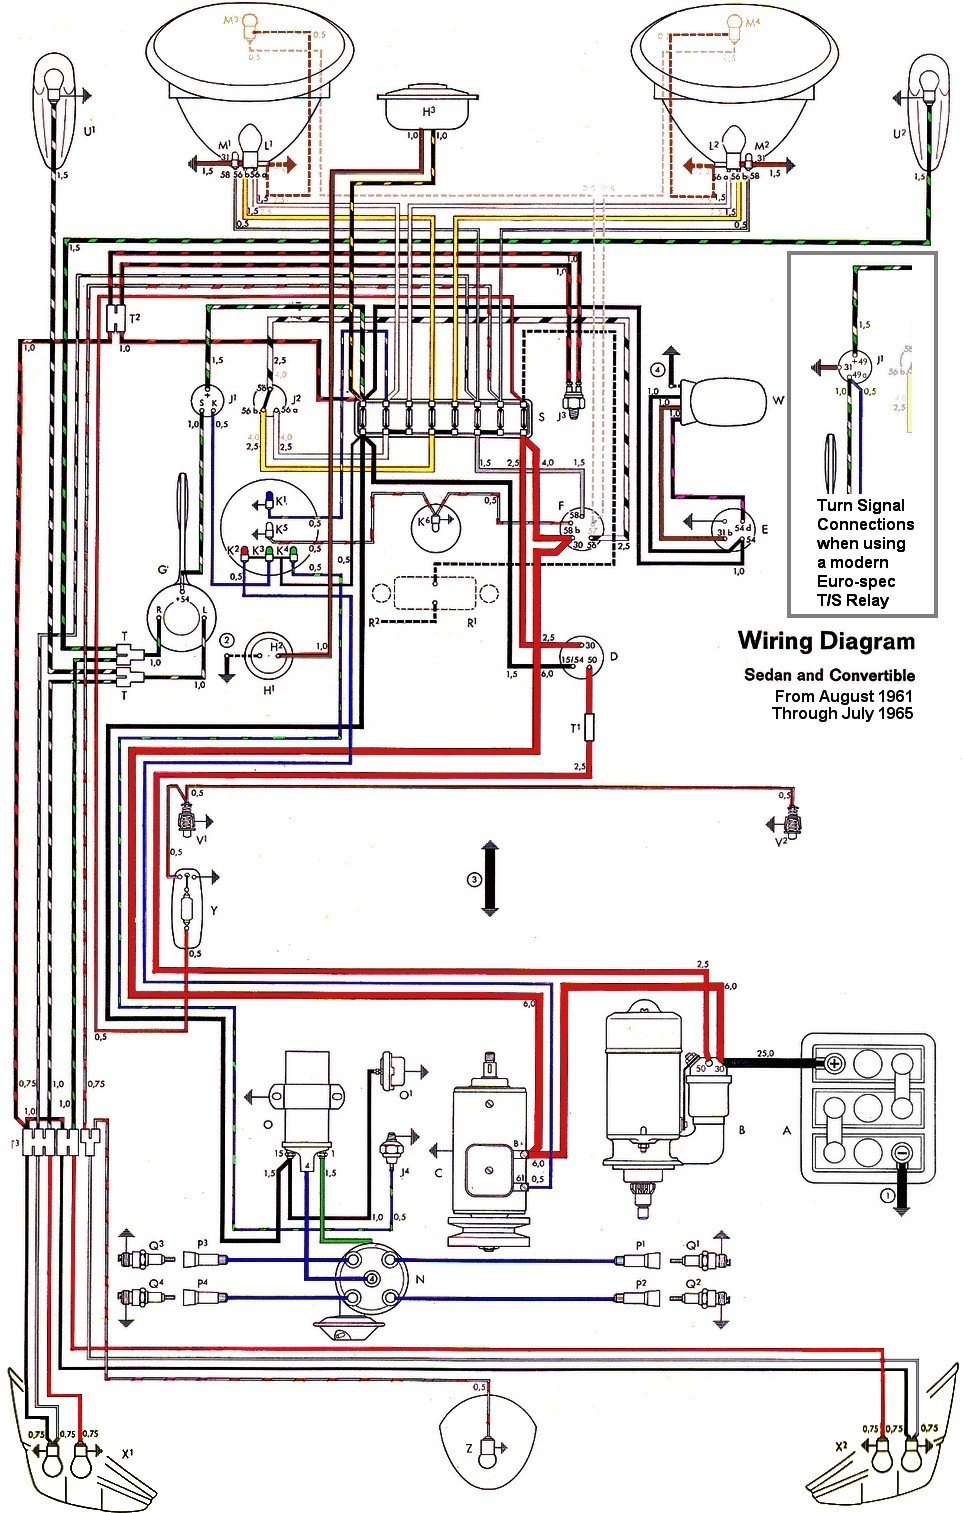 1973 vw wiring diagram schematic diagrams rh ogmconsulting co 1974 super beetle wire diagram 1974 vw super beetle wiring diagram